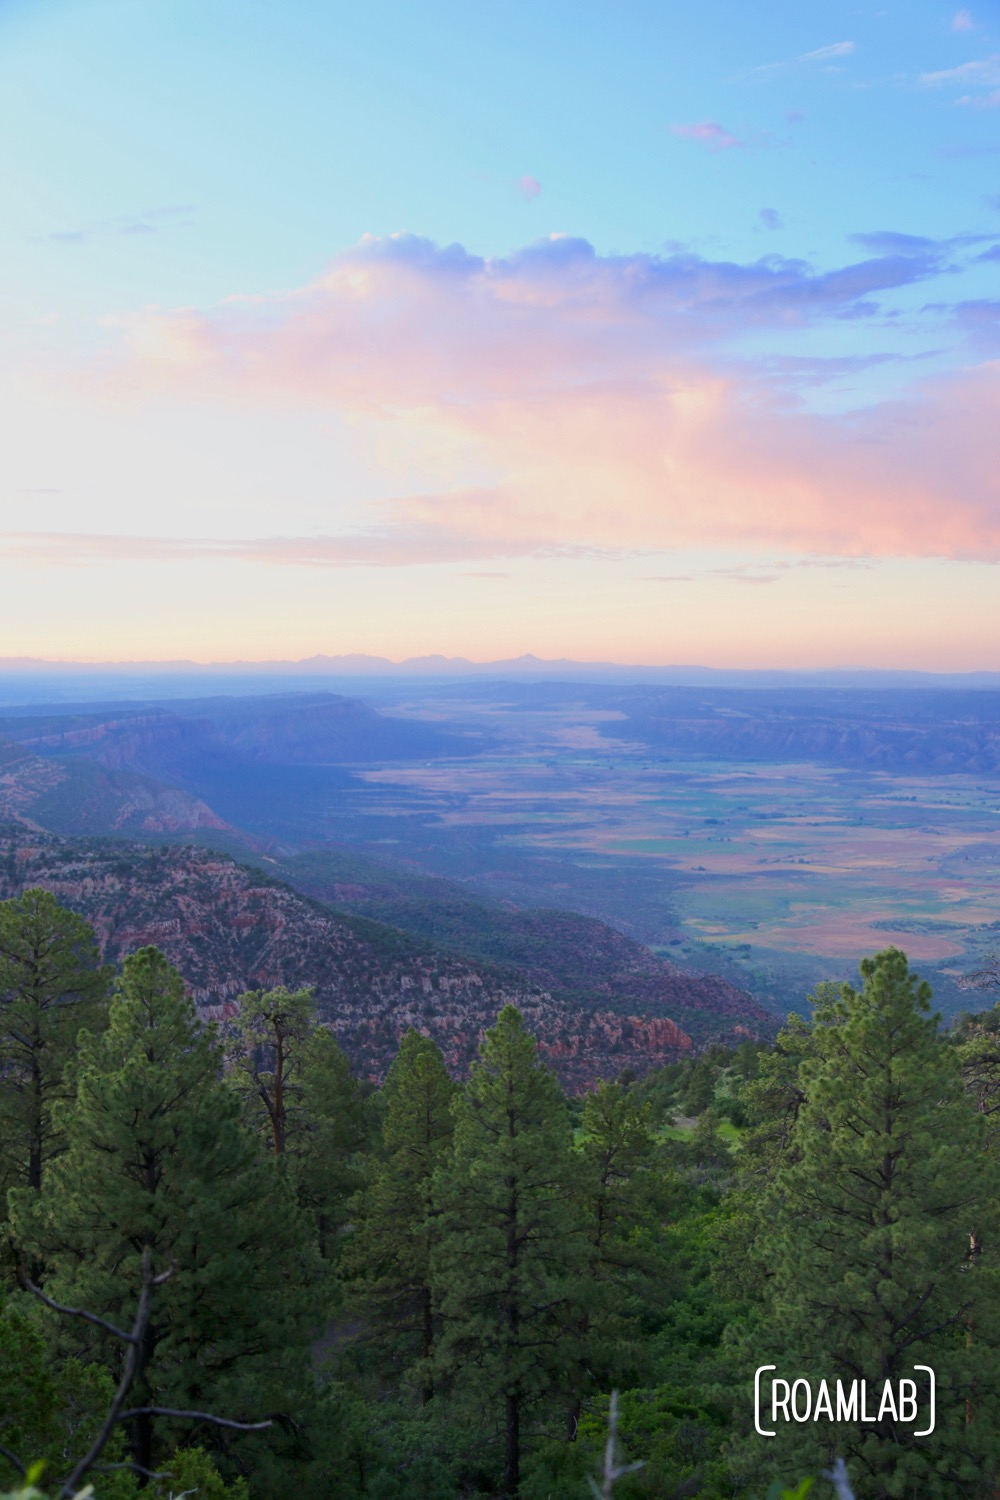 Sunset view of Paradox Valley, Colorado